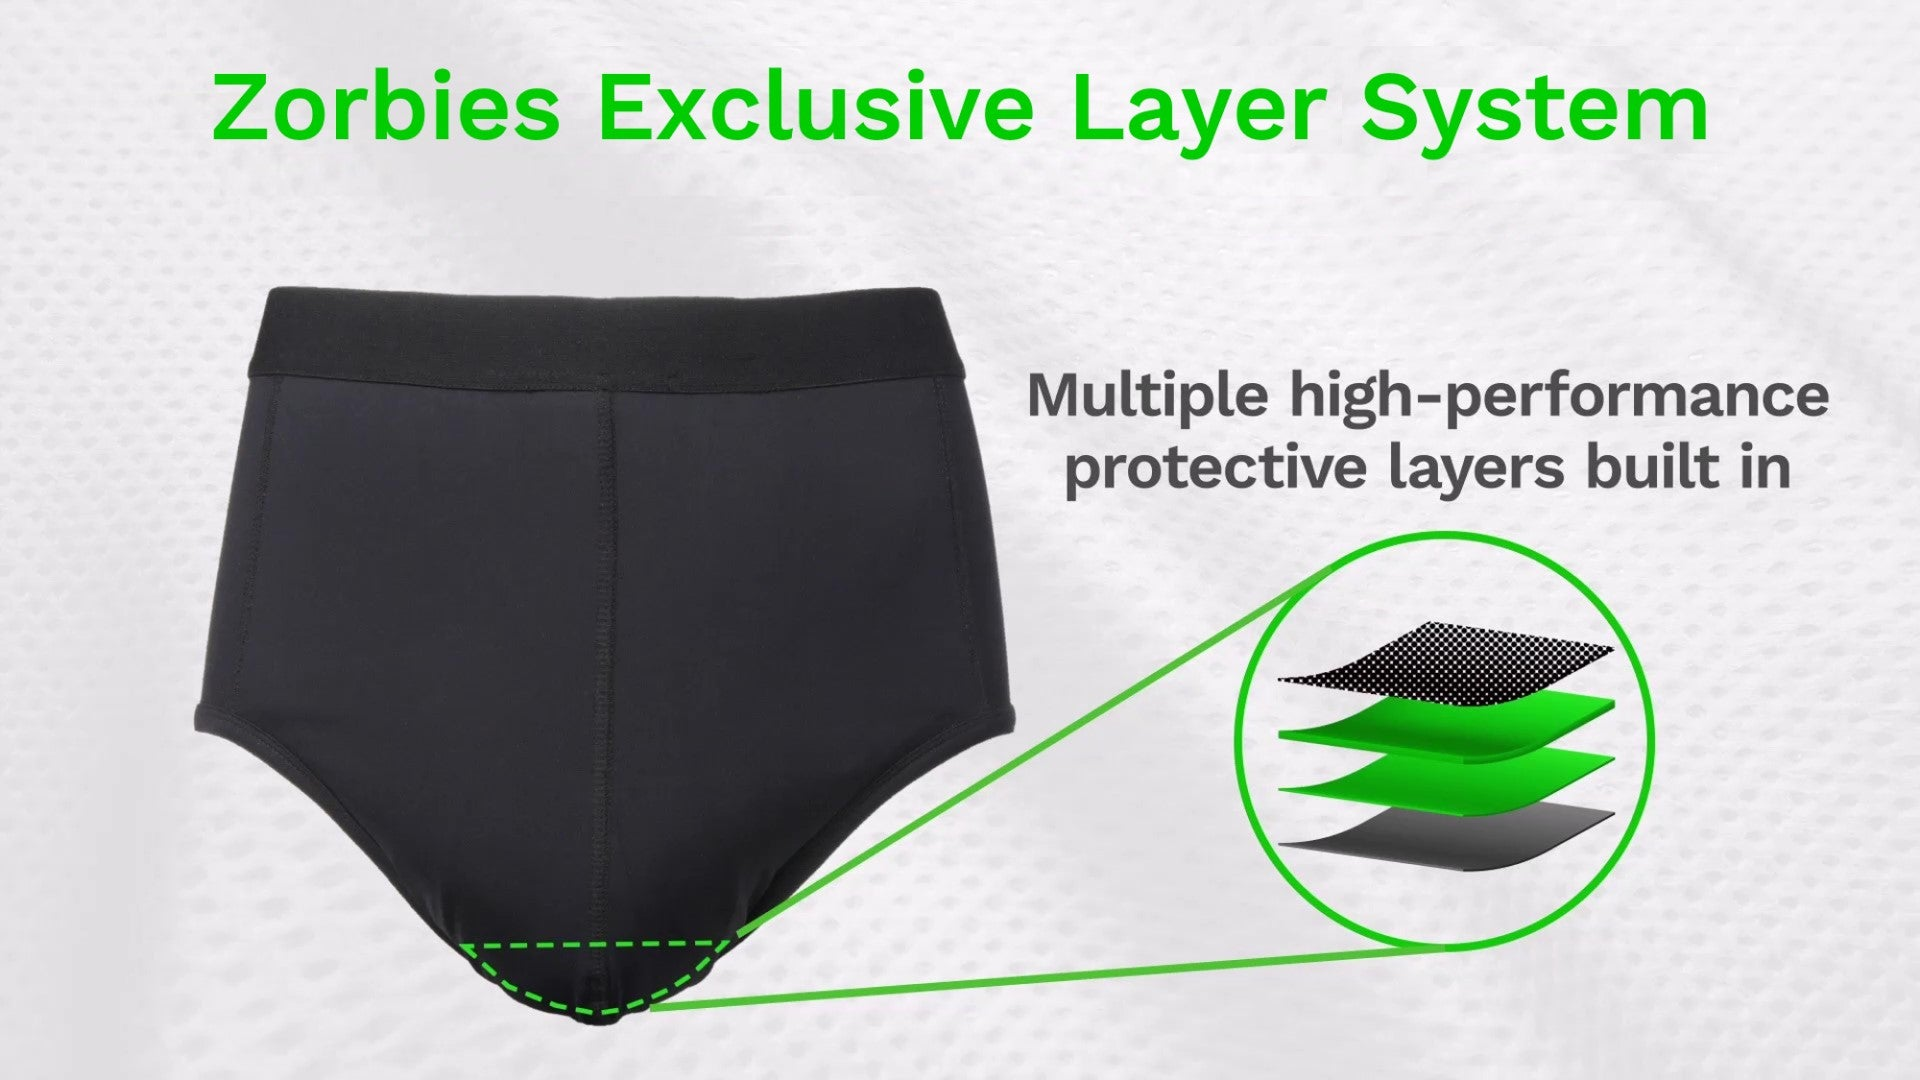 zorbies exclusive incontinence protection system layers